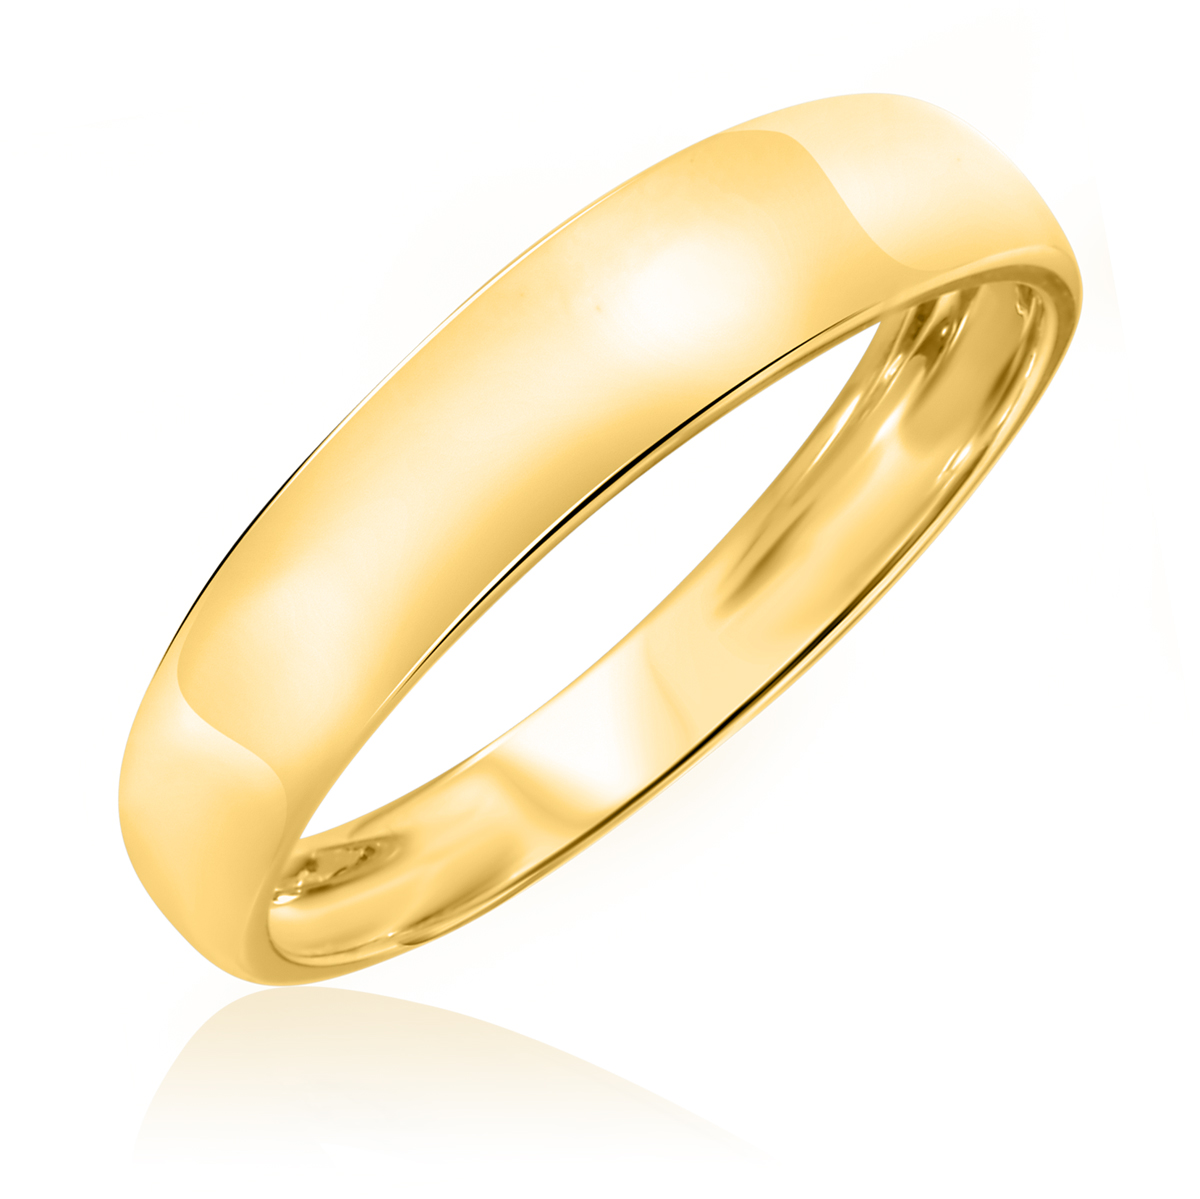 Traditional High Polish Rounded, 5 millimeter, 14K Yellow Gold Traditional Mens